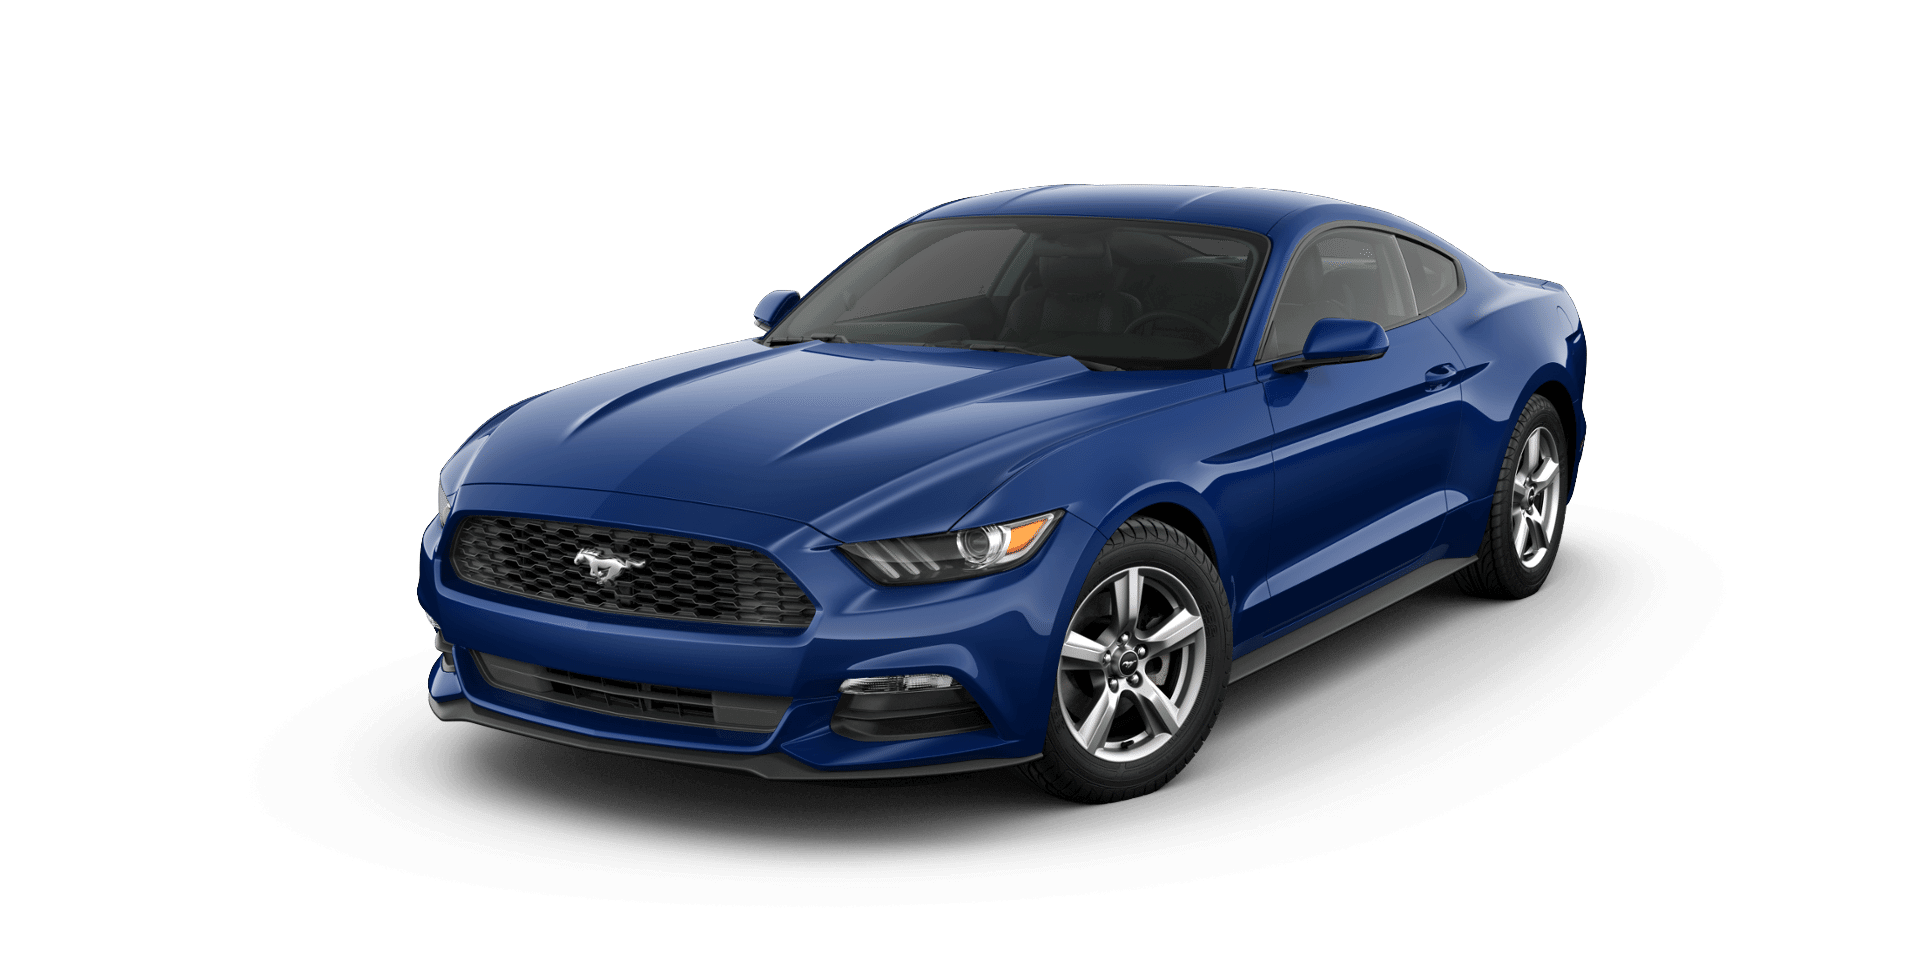 Ford Mustang PNG images free download.